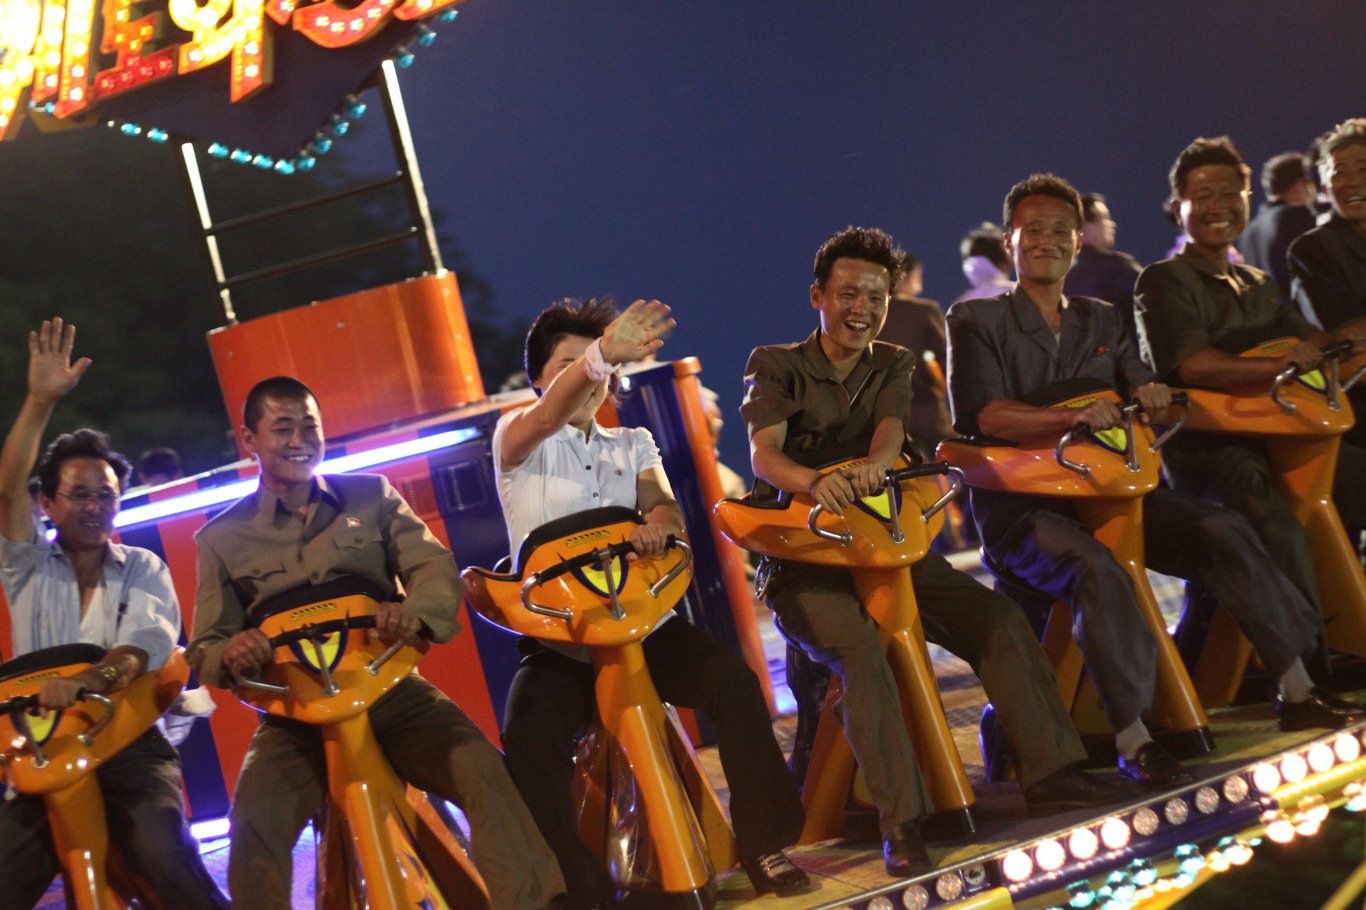 Kaeson evening funfair in Pyongyang capital of North Korea. Many locals gather here on holidays. Trip arranged by KTG Tours